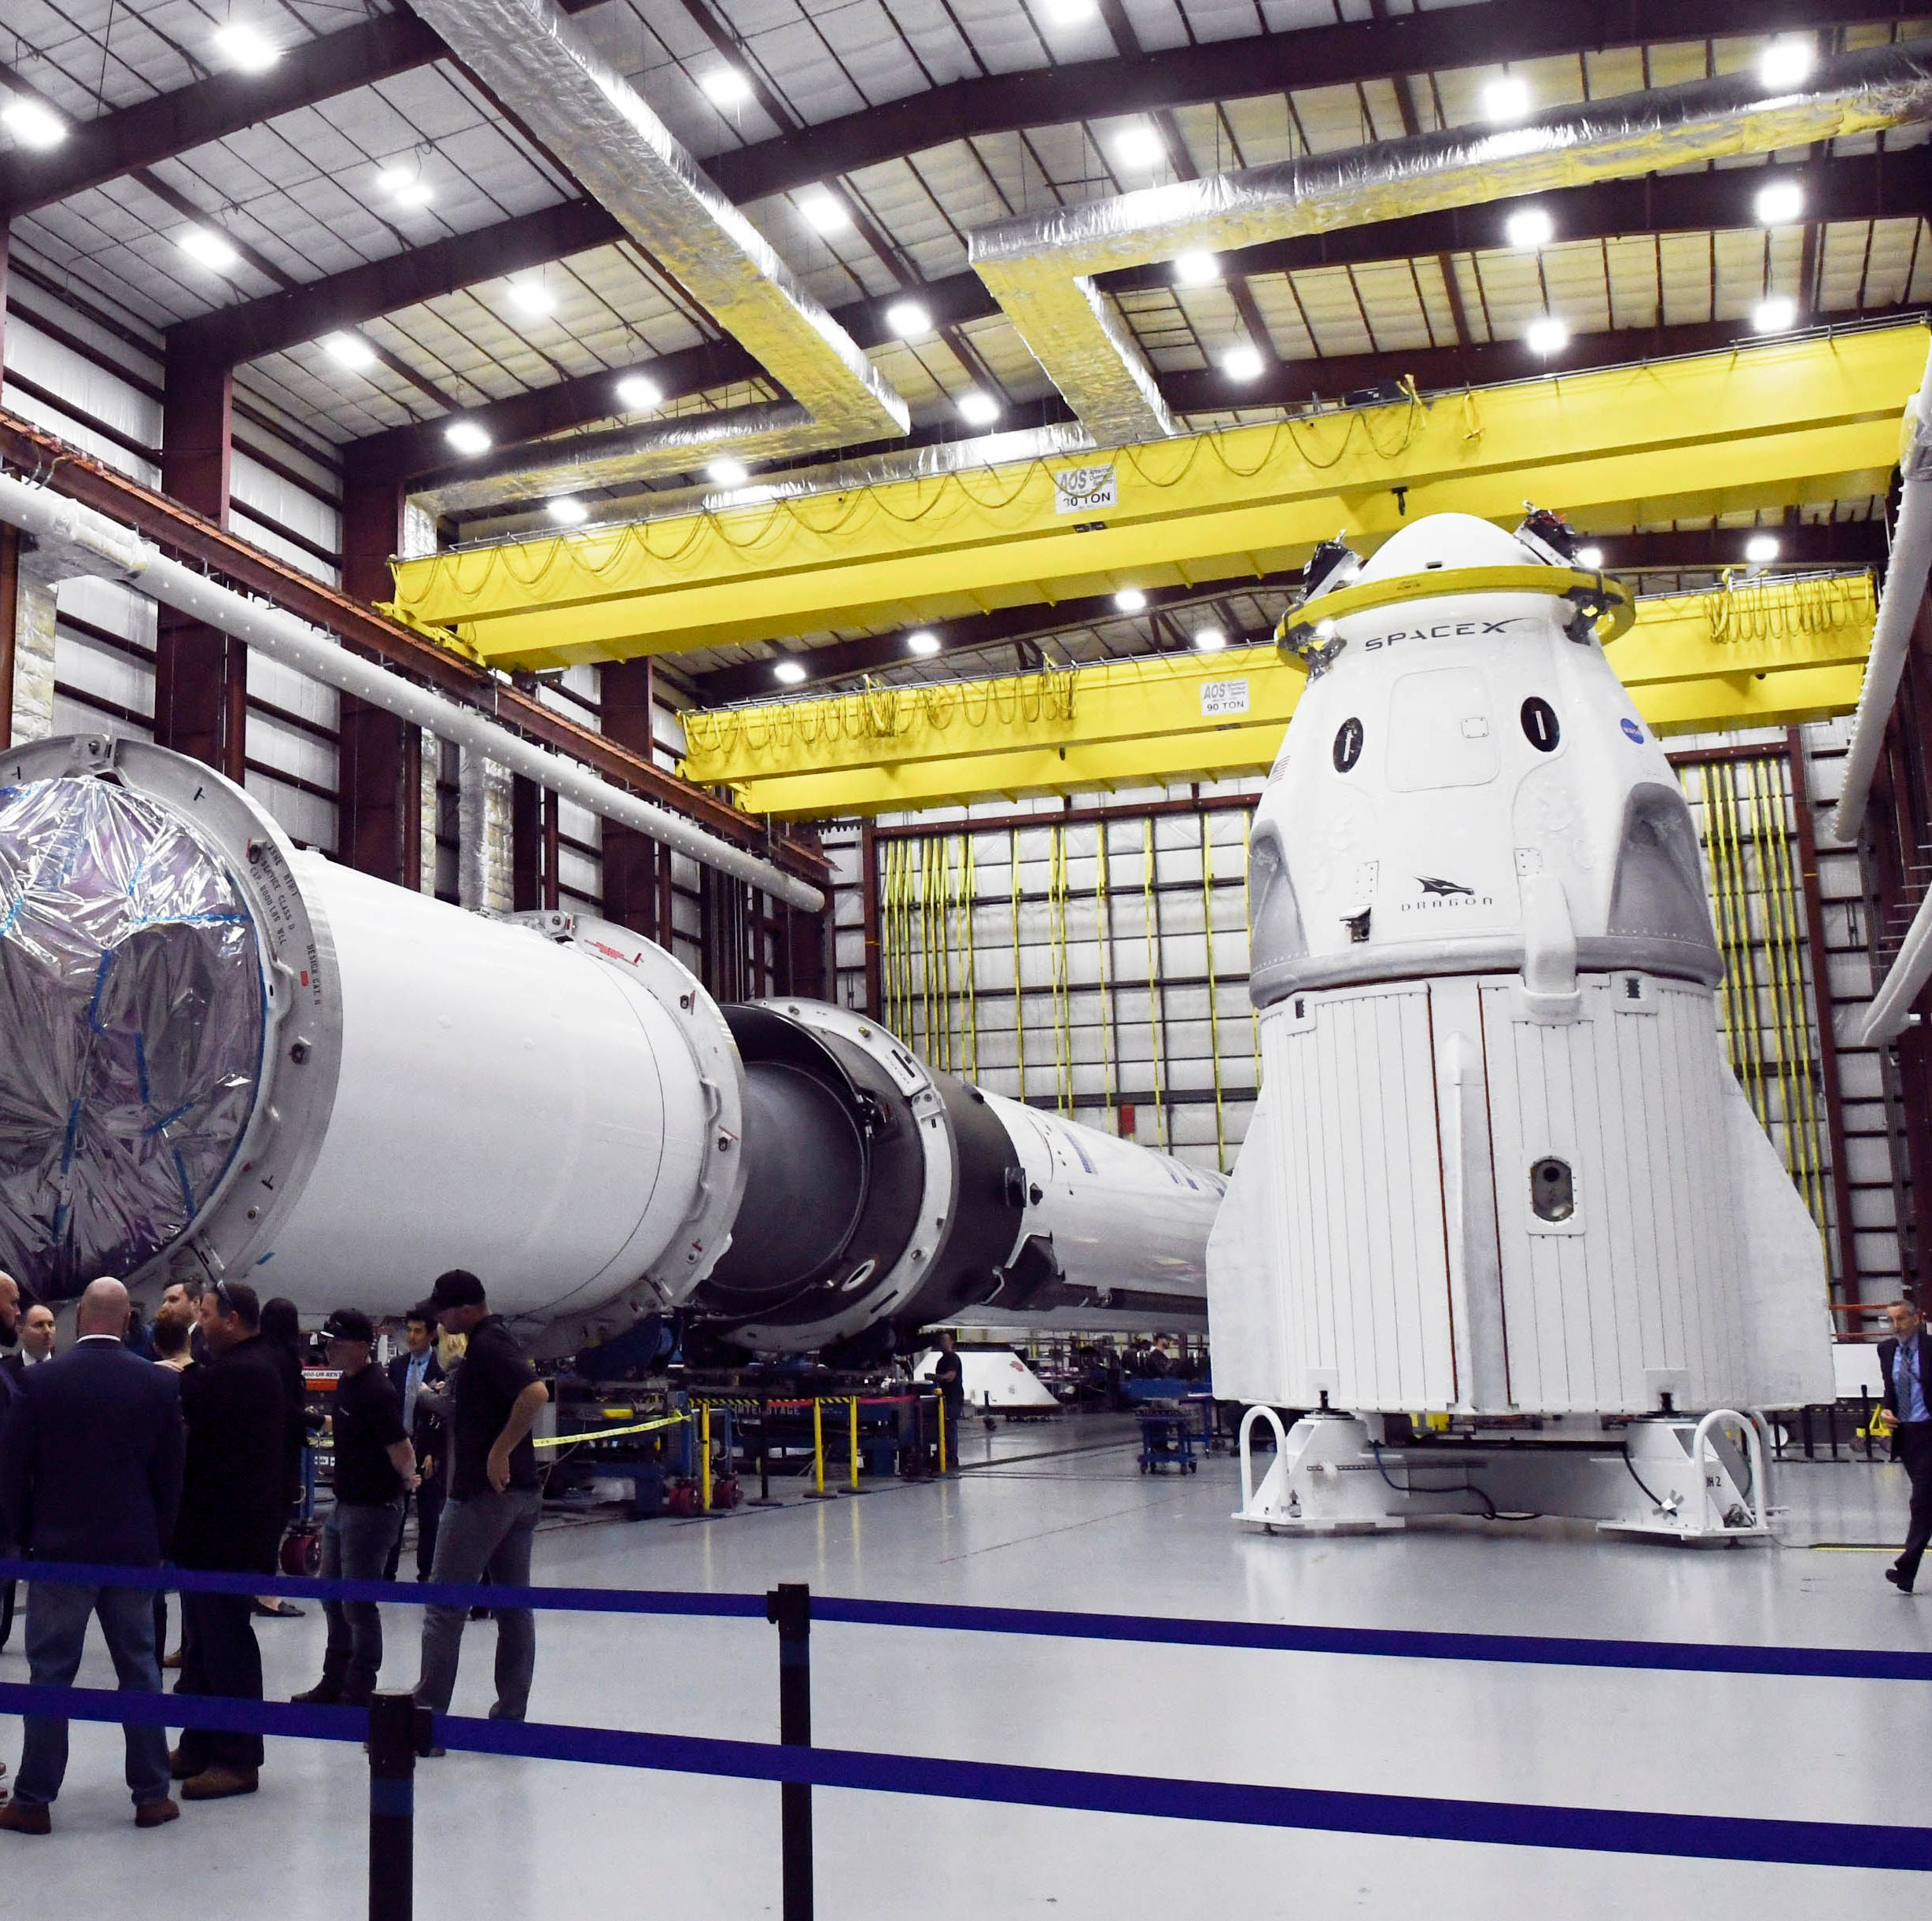 SpaceX test flight: Kennedy Space Center offers VIP viewing